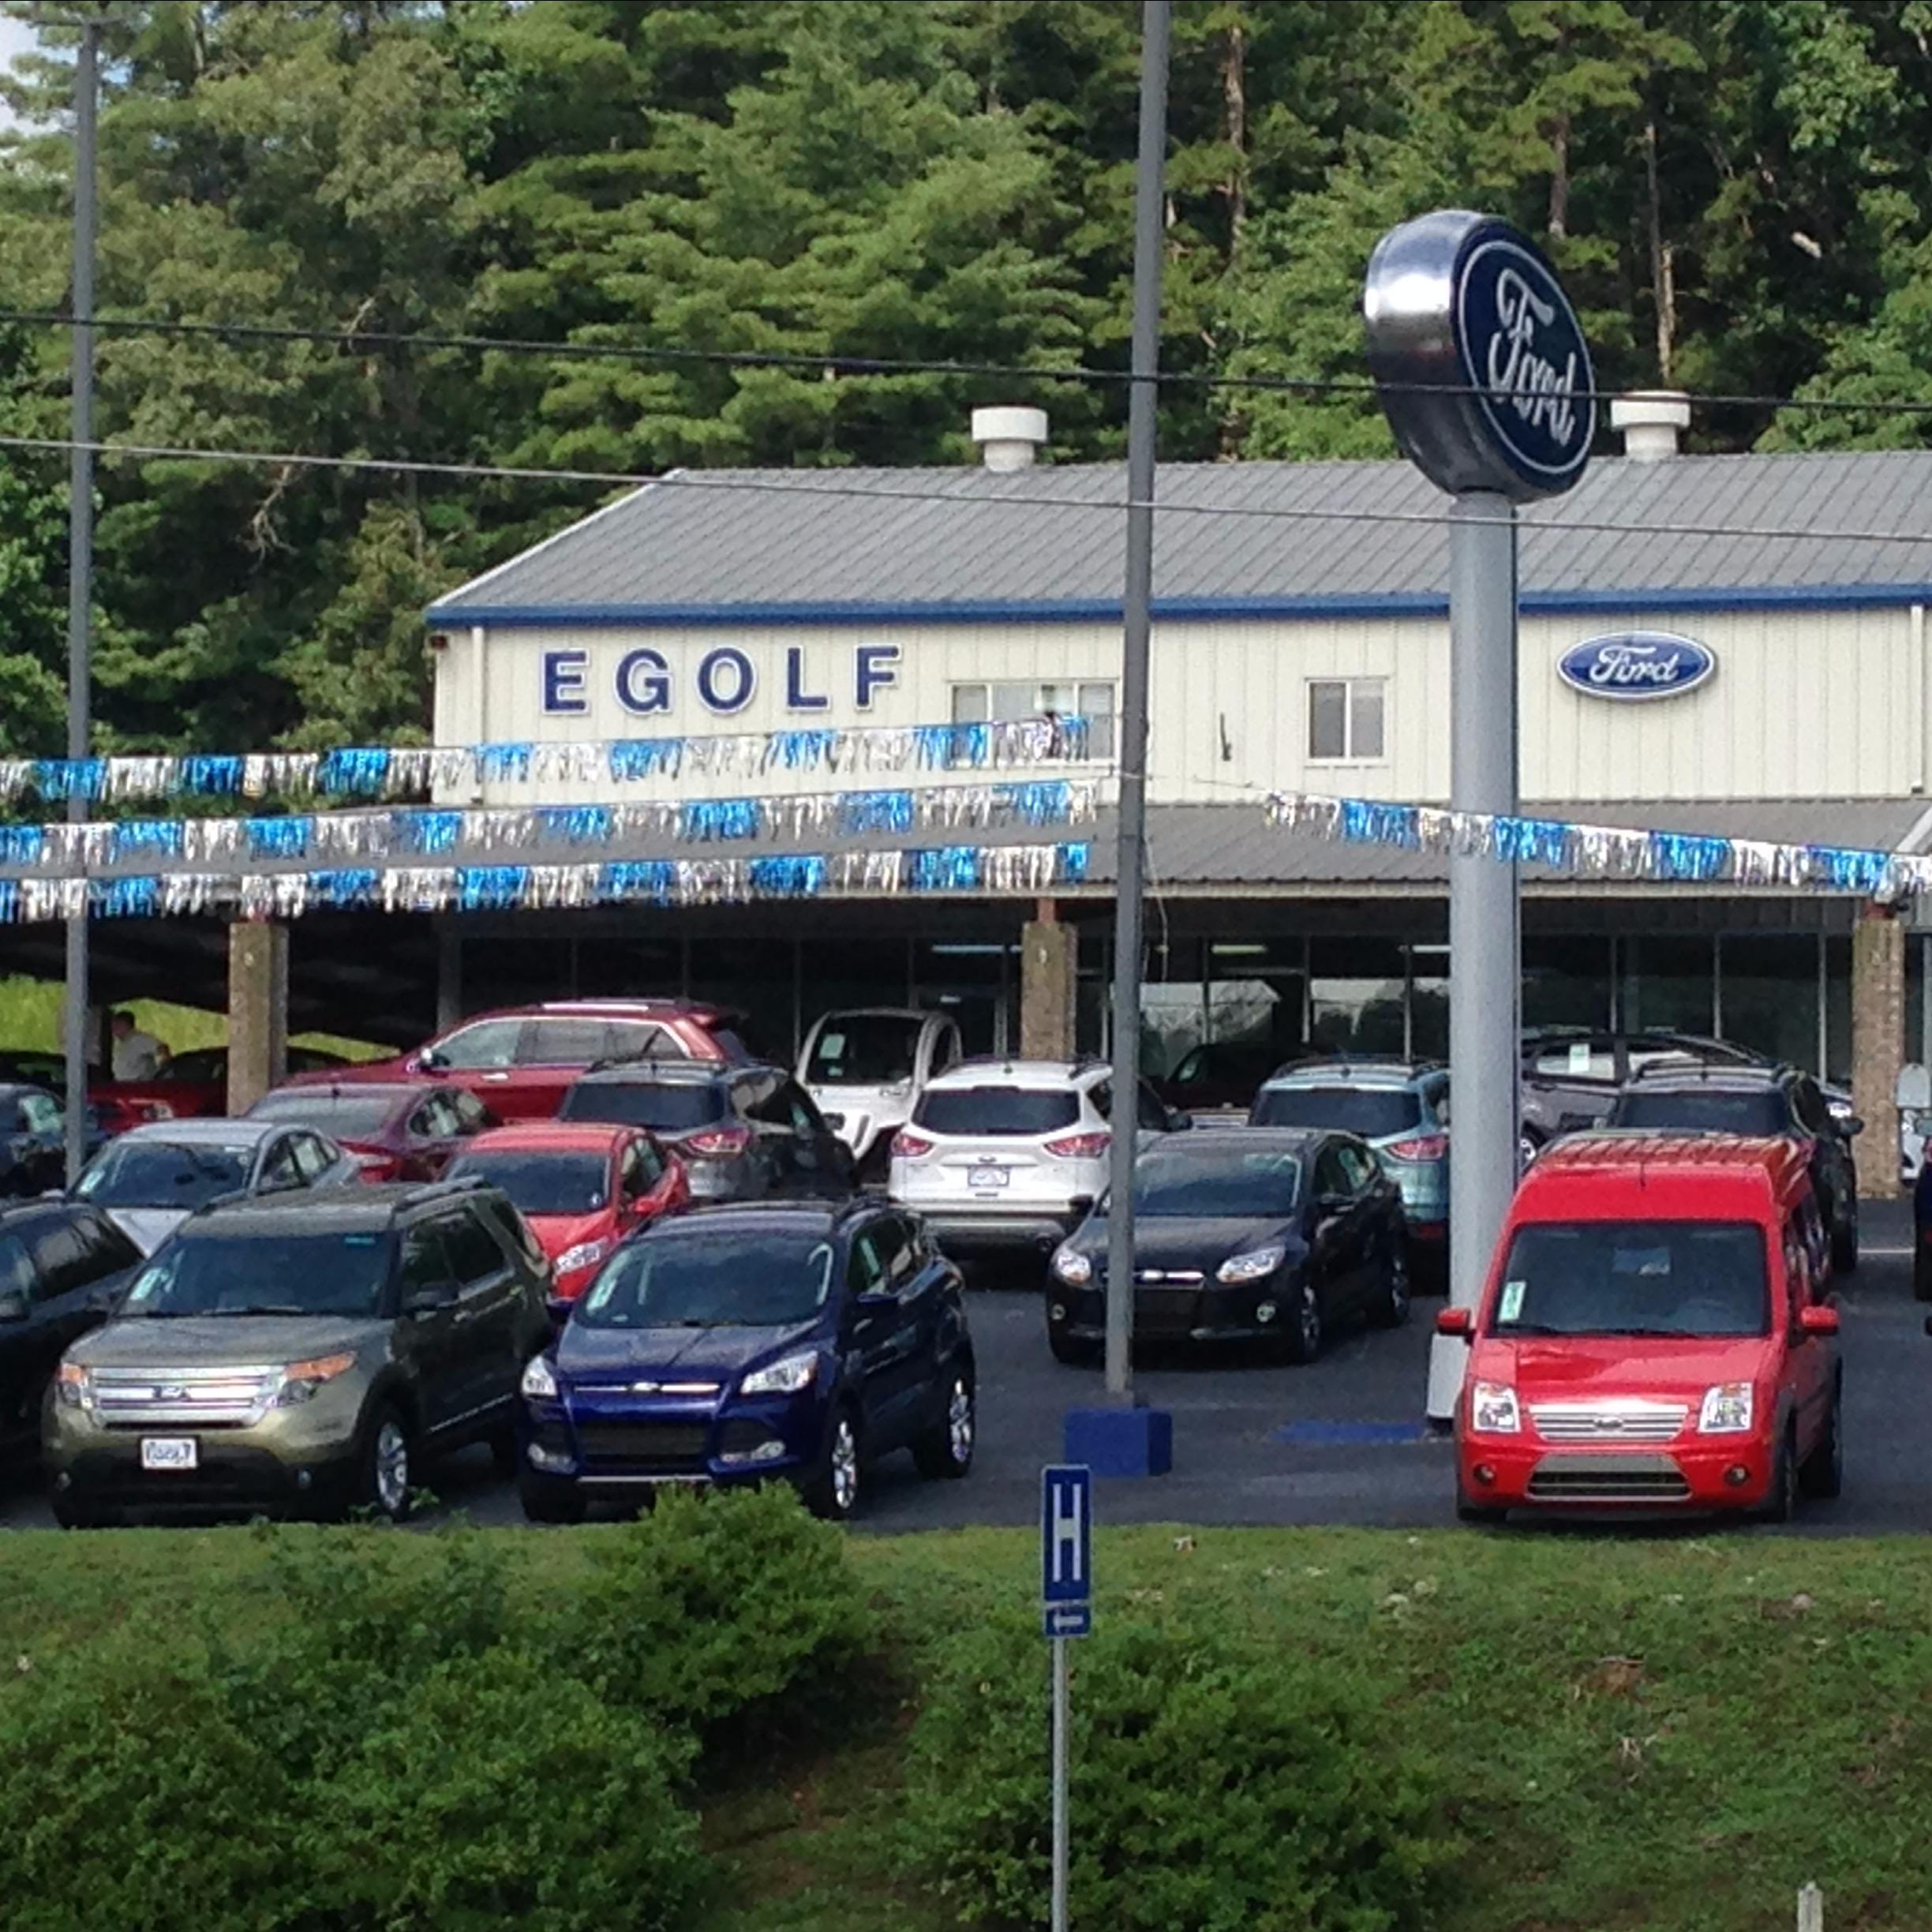 Acura Dealers In Nc: Egolf Ford Of Brevard In Brevard, NC 28712